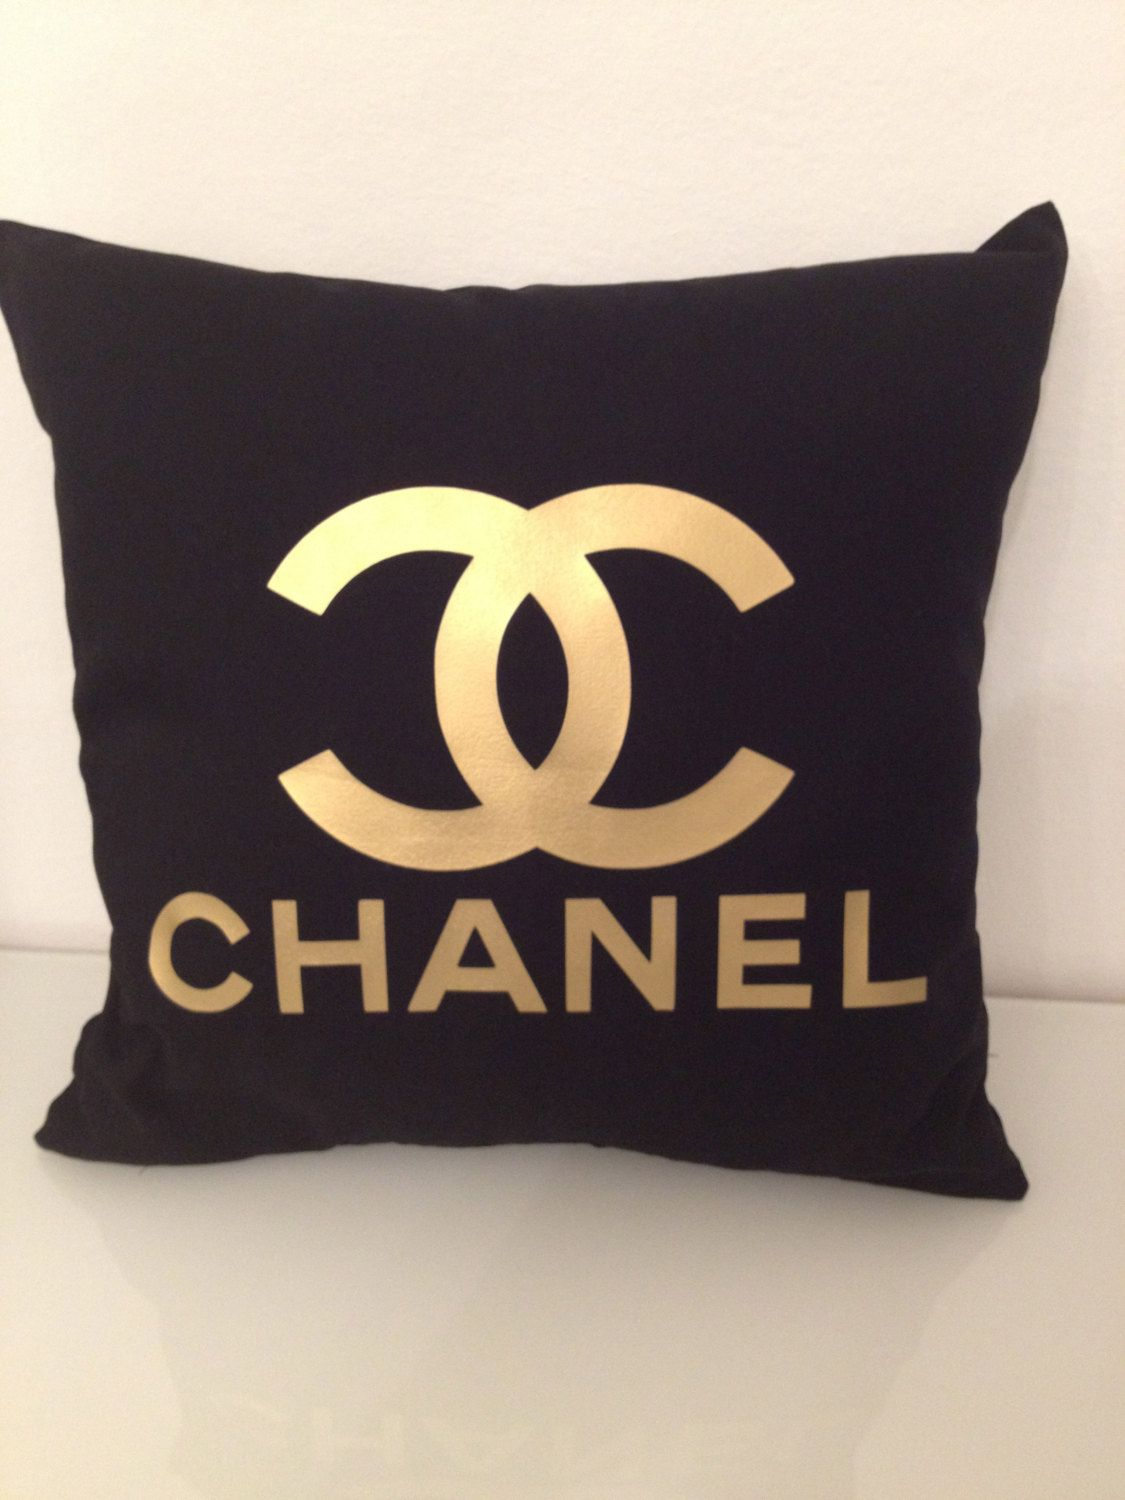 Chanel Leather Throw Pillow : Chanel pillows. This is a first for me! I just thought that Chanel only had purses, wallets, and ...